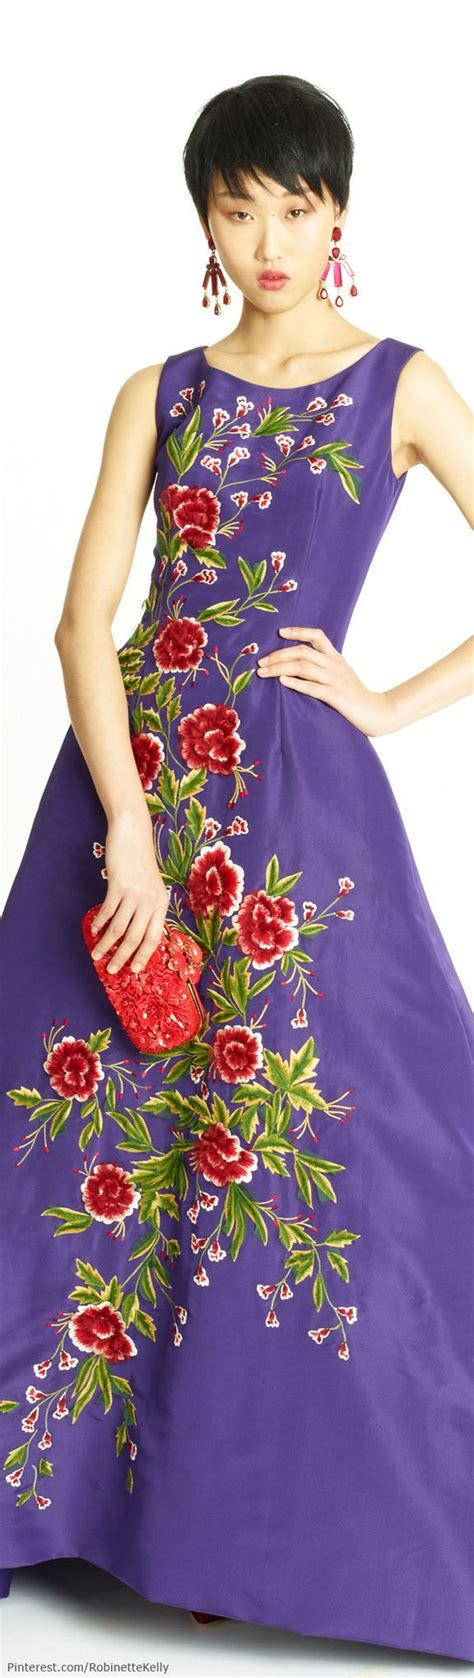 Doniya Plain Blouse Violet High Quality 17 best images about embroidery on embroidery